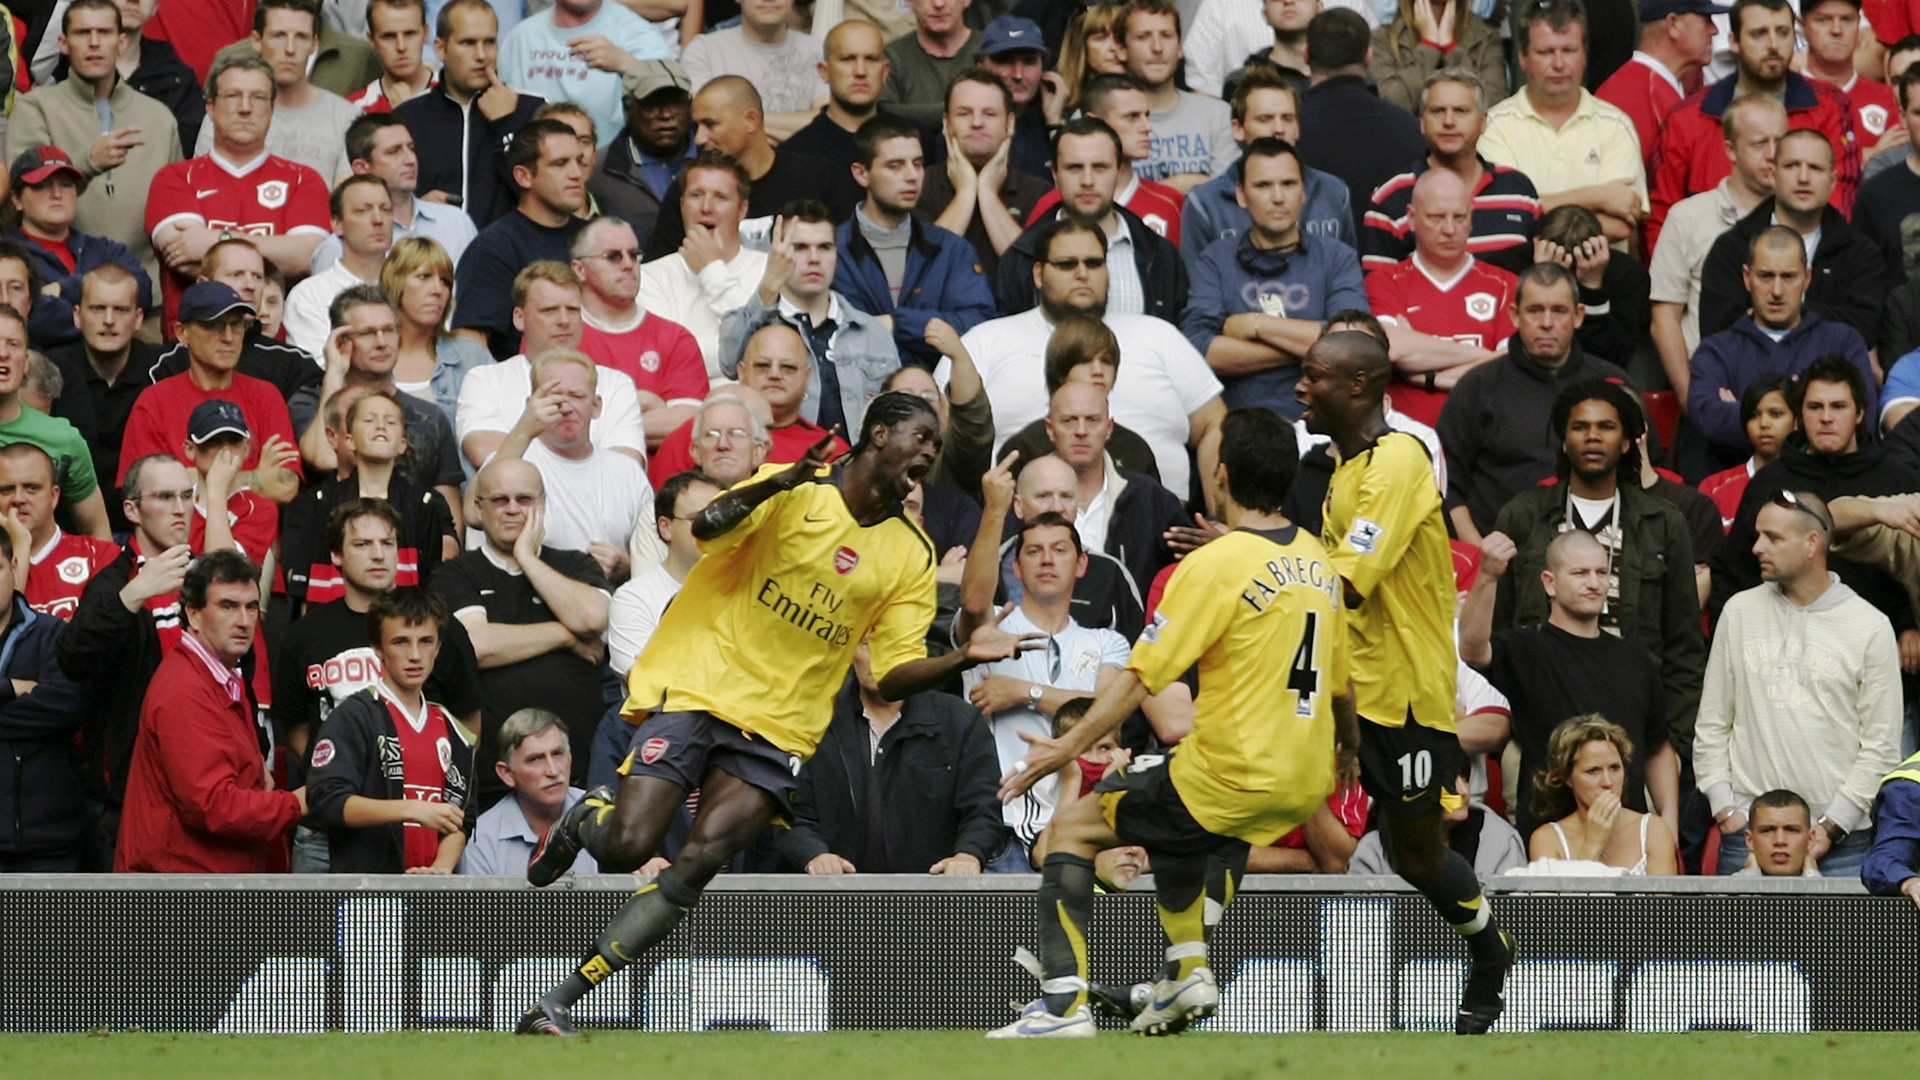 Emmanuel Adebayor Manchester United Arsenal Premier League 17092006